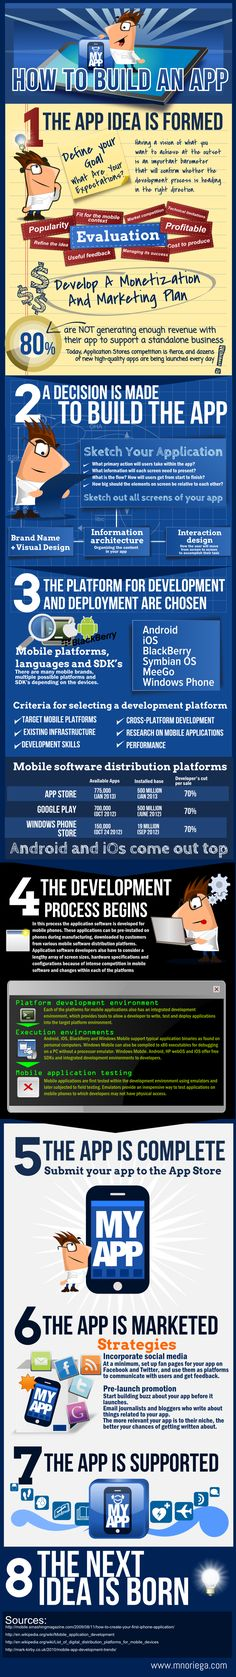 How to build an APP? #infographic